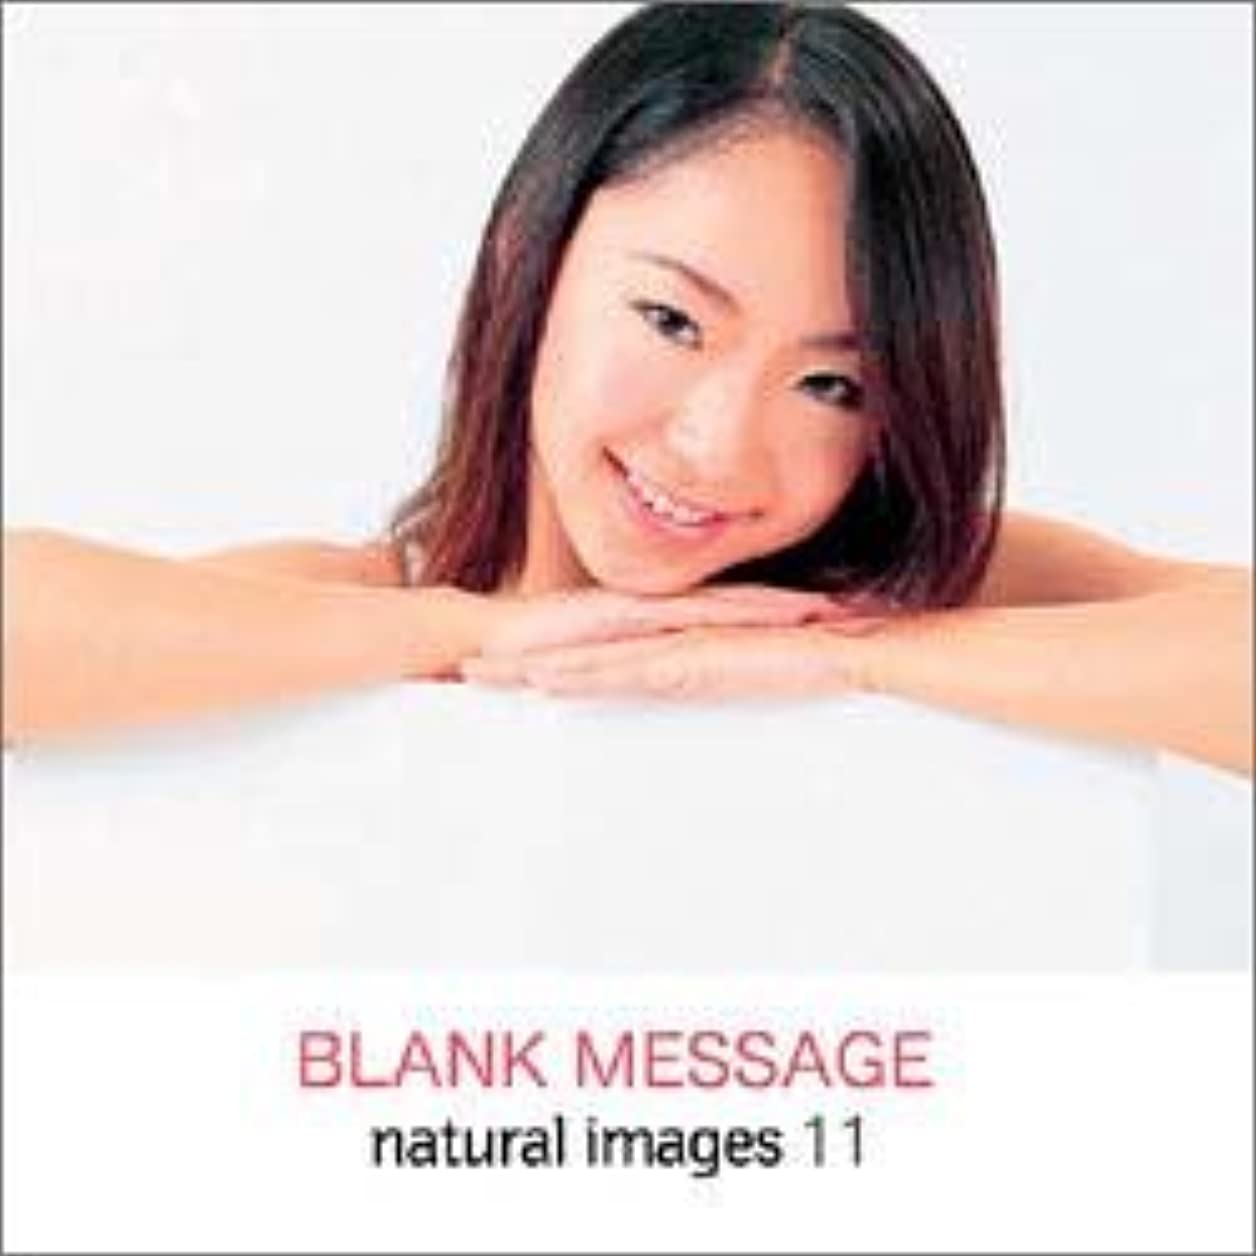 打ち上げる売る静めるnatural images Vol.11 BLANK MESSAGE